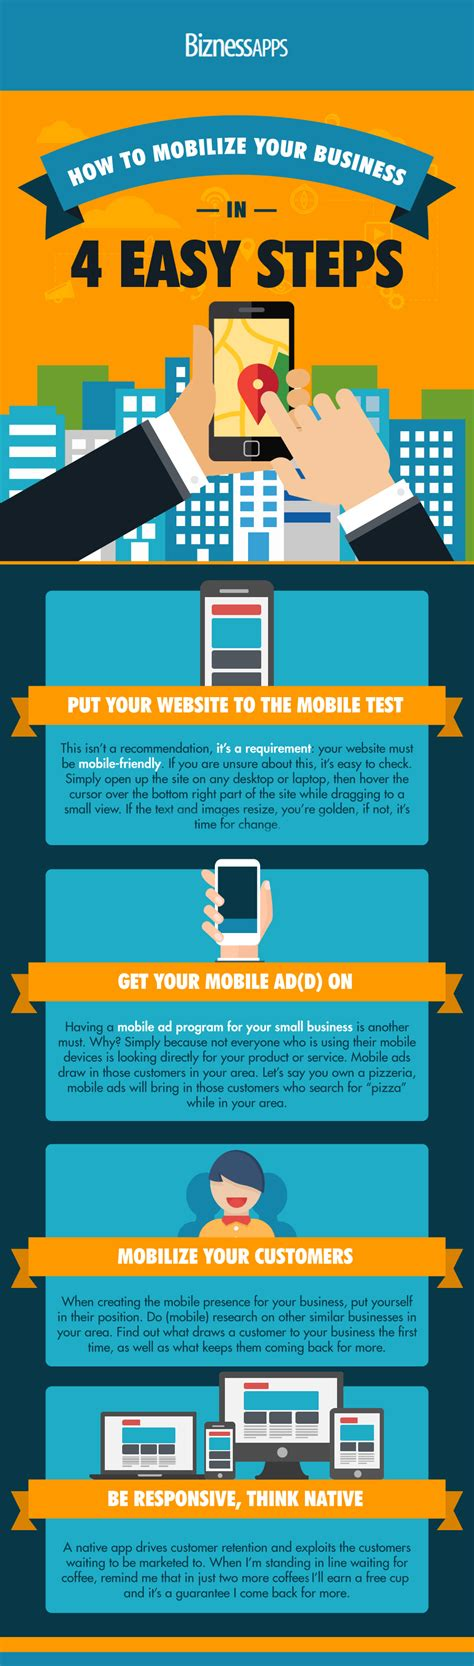 Detox Your In 4 Easy Steps by How To Mobilize Your Business In 4 Easy Steps Infographic